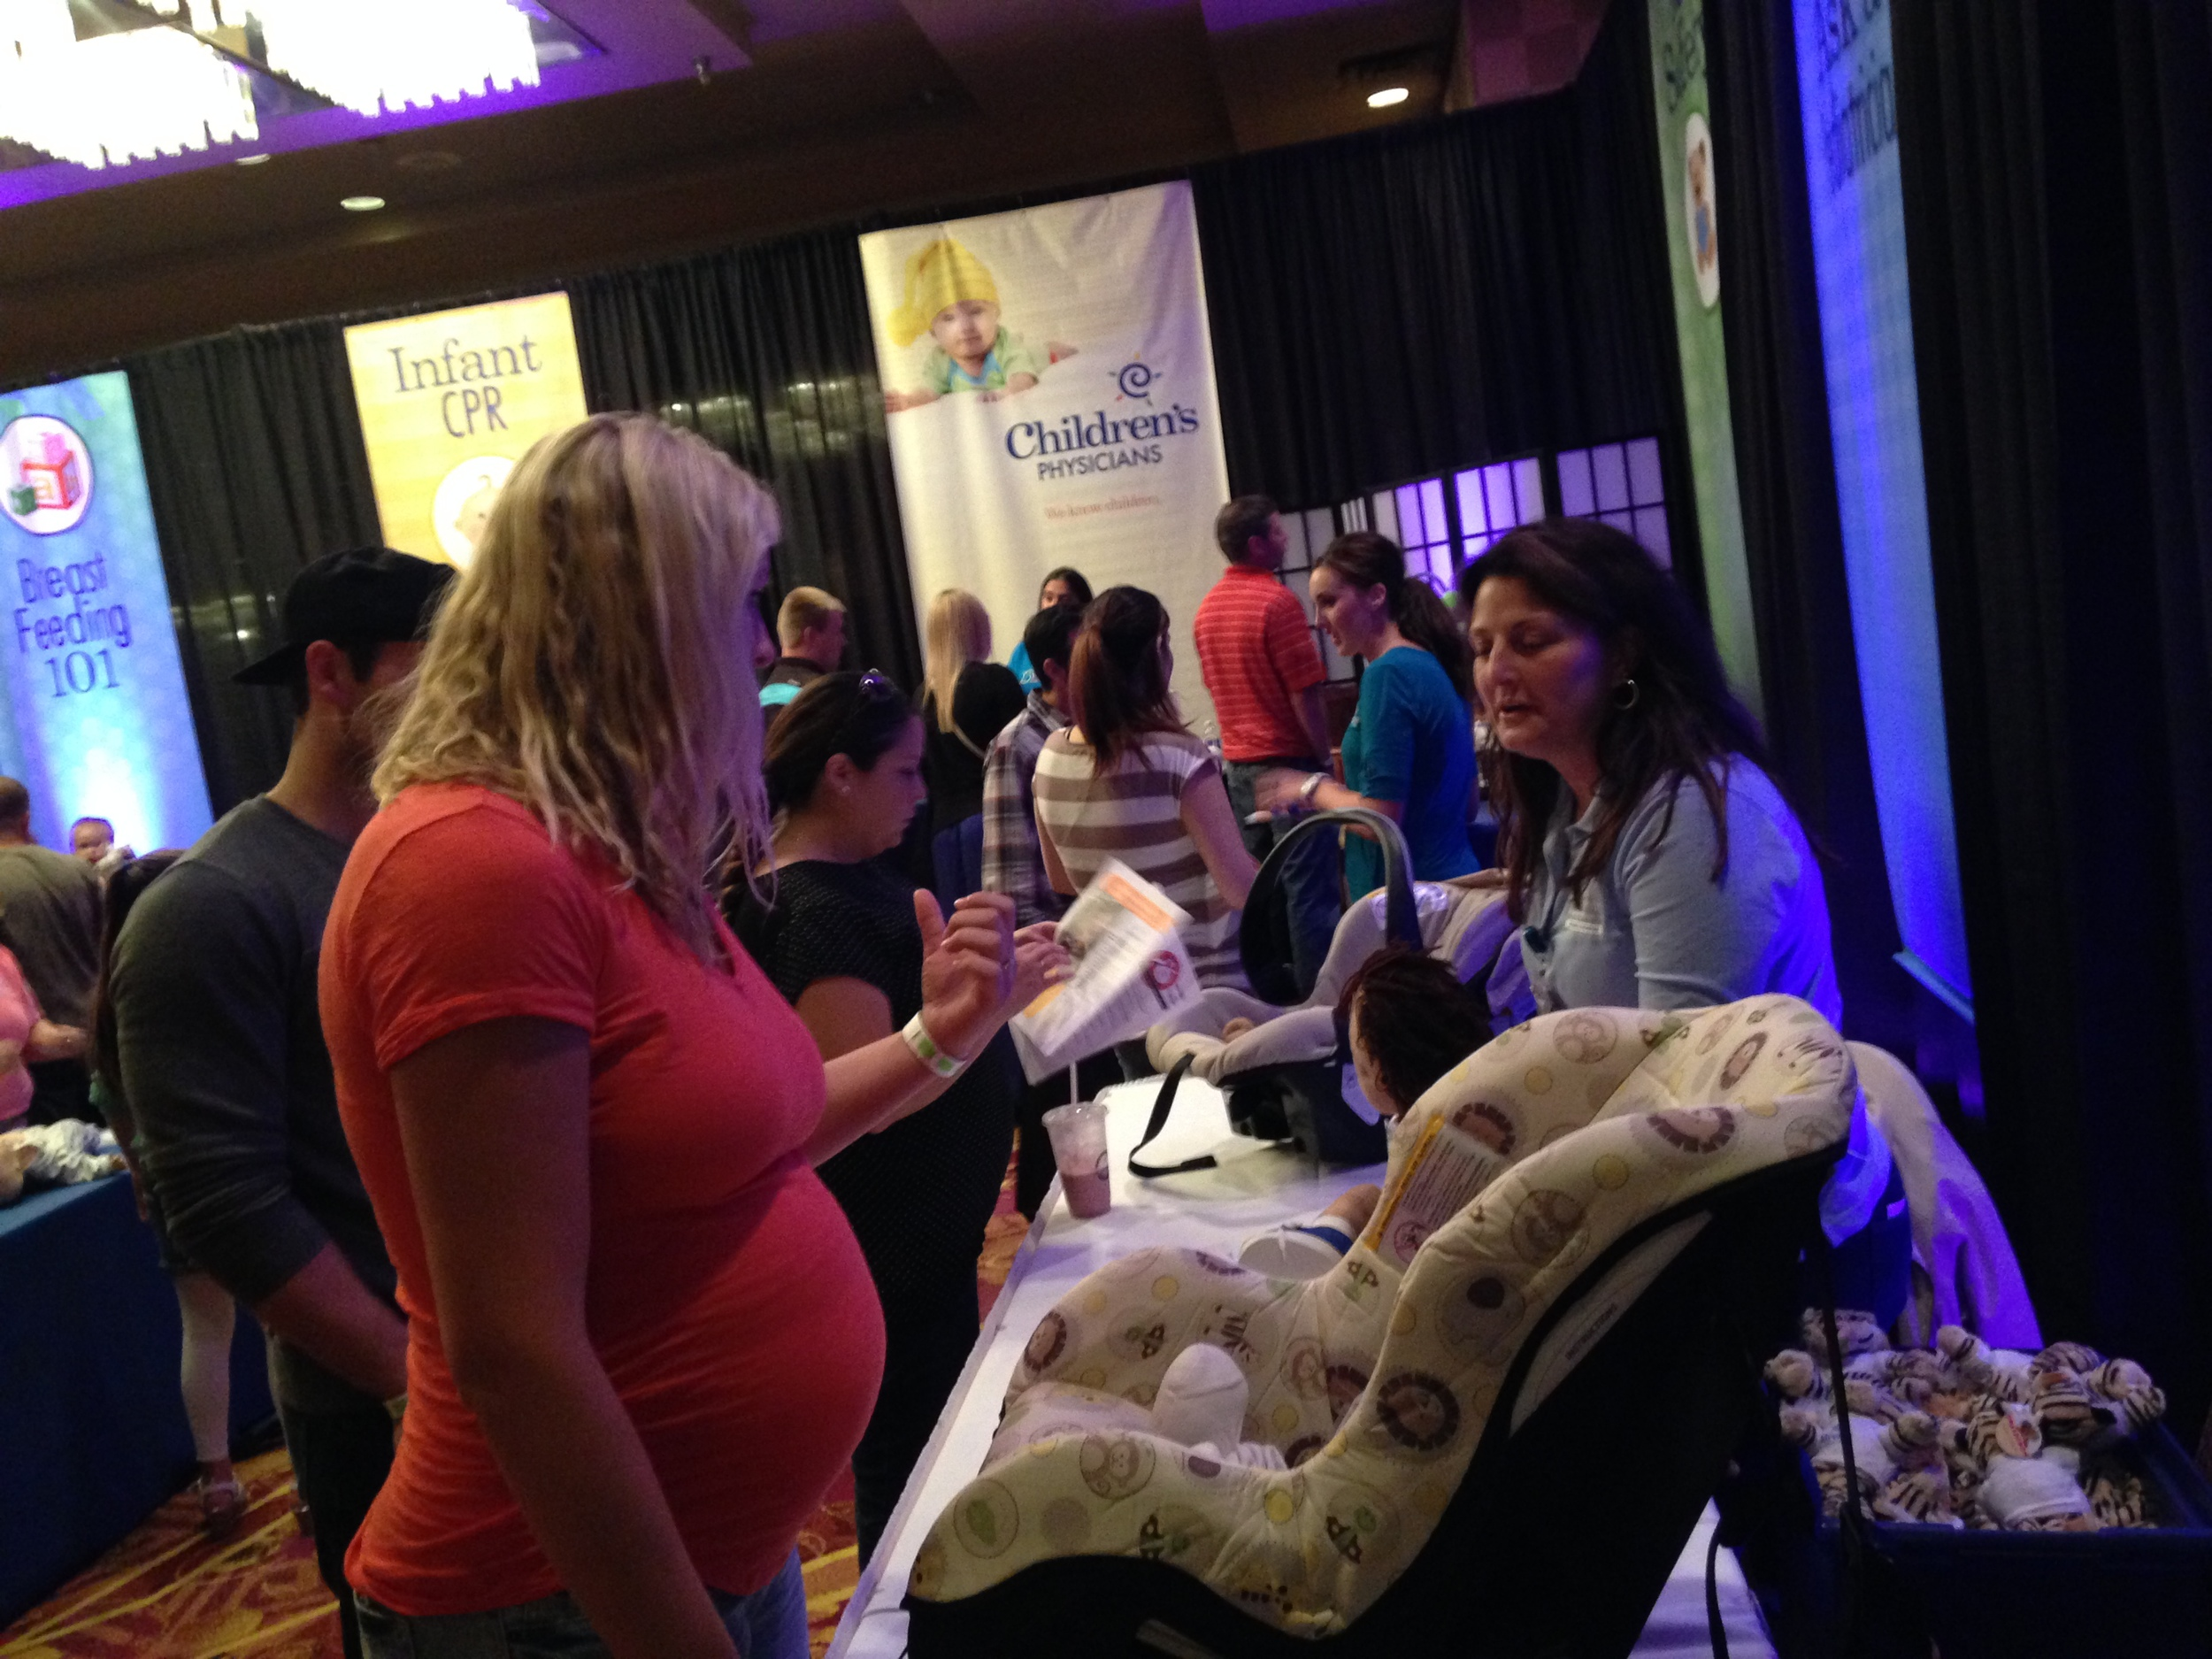 """Baby Safety Sanctuary where families learn car seat safety, infant CPR, and how to set up a safe nursery!     """"I am sitting in line witnessing great conversations between first time expecting moms, a mom with her expecting daughter, strangers who have a baby bump in common.    It's a beautiful thing!    - Johanna F's Facebook message while waiting in line of 1000 for Swag Bags      """"I give a five star for the event. This was our first time going. I was skeptical because of the reviews from last year but obviously they listened to the peoples comments. Everyone was so nice and helpful. I loved all the vendors. I also loved the fact that there were actual gifts and free samples. It seems like these days its really hard to find samples and in order to try something out you have to buy it. There was a mommy station and classes too. Lots of good information, and good people.    I will come again and tell my mommy friends about it too. Thank you so much for setting up such a wonderful event!""""    - Sara K's Facebook Review of June 2016 Show      """"My daughter and I had a great time. This was a first for both of us, and there was so much to see and learn.. And to top it off she won Most deserving mother to be....so exciting...."""" - Tracie B Grandma and attendee posting her experience on Facebook"""